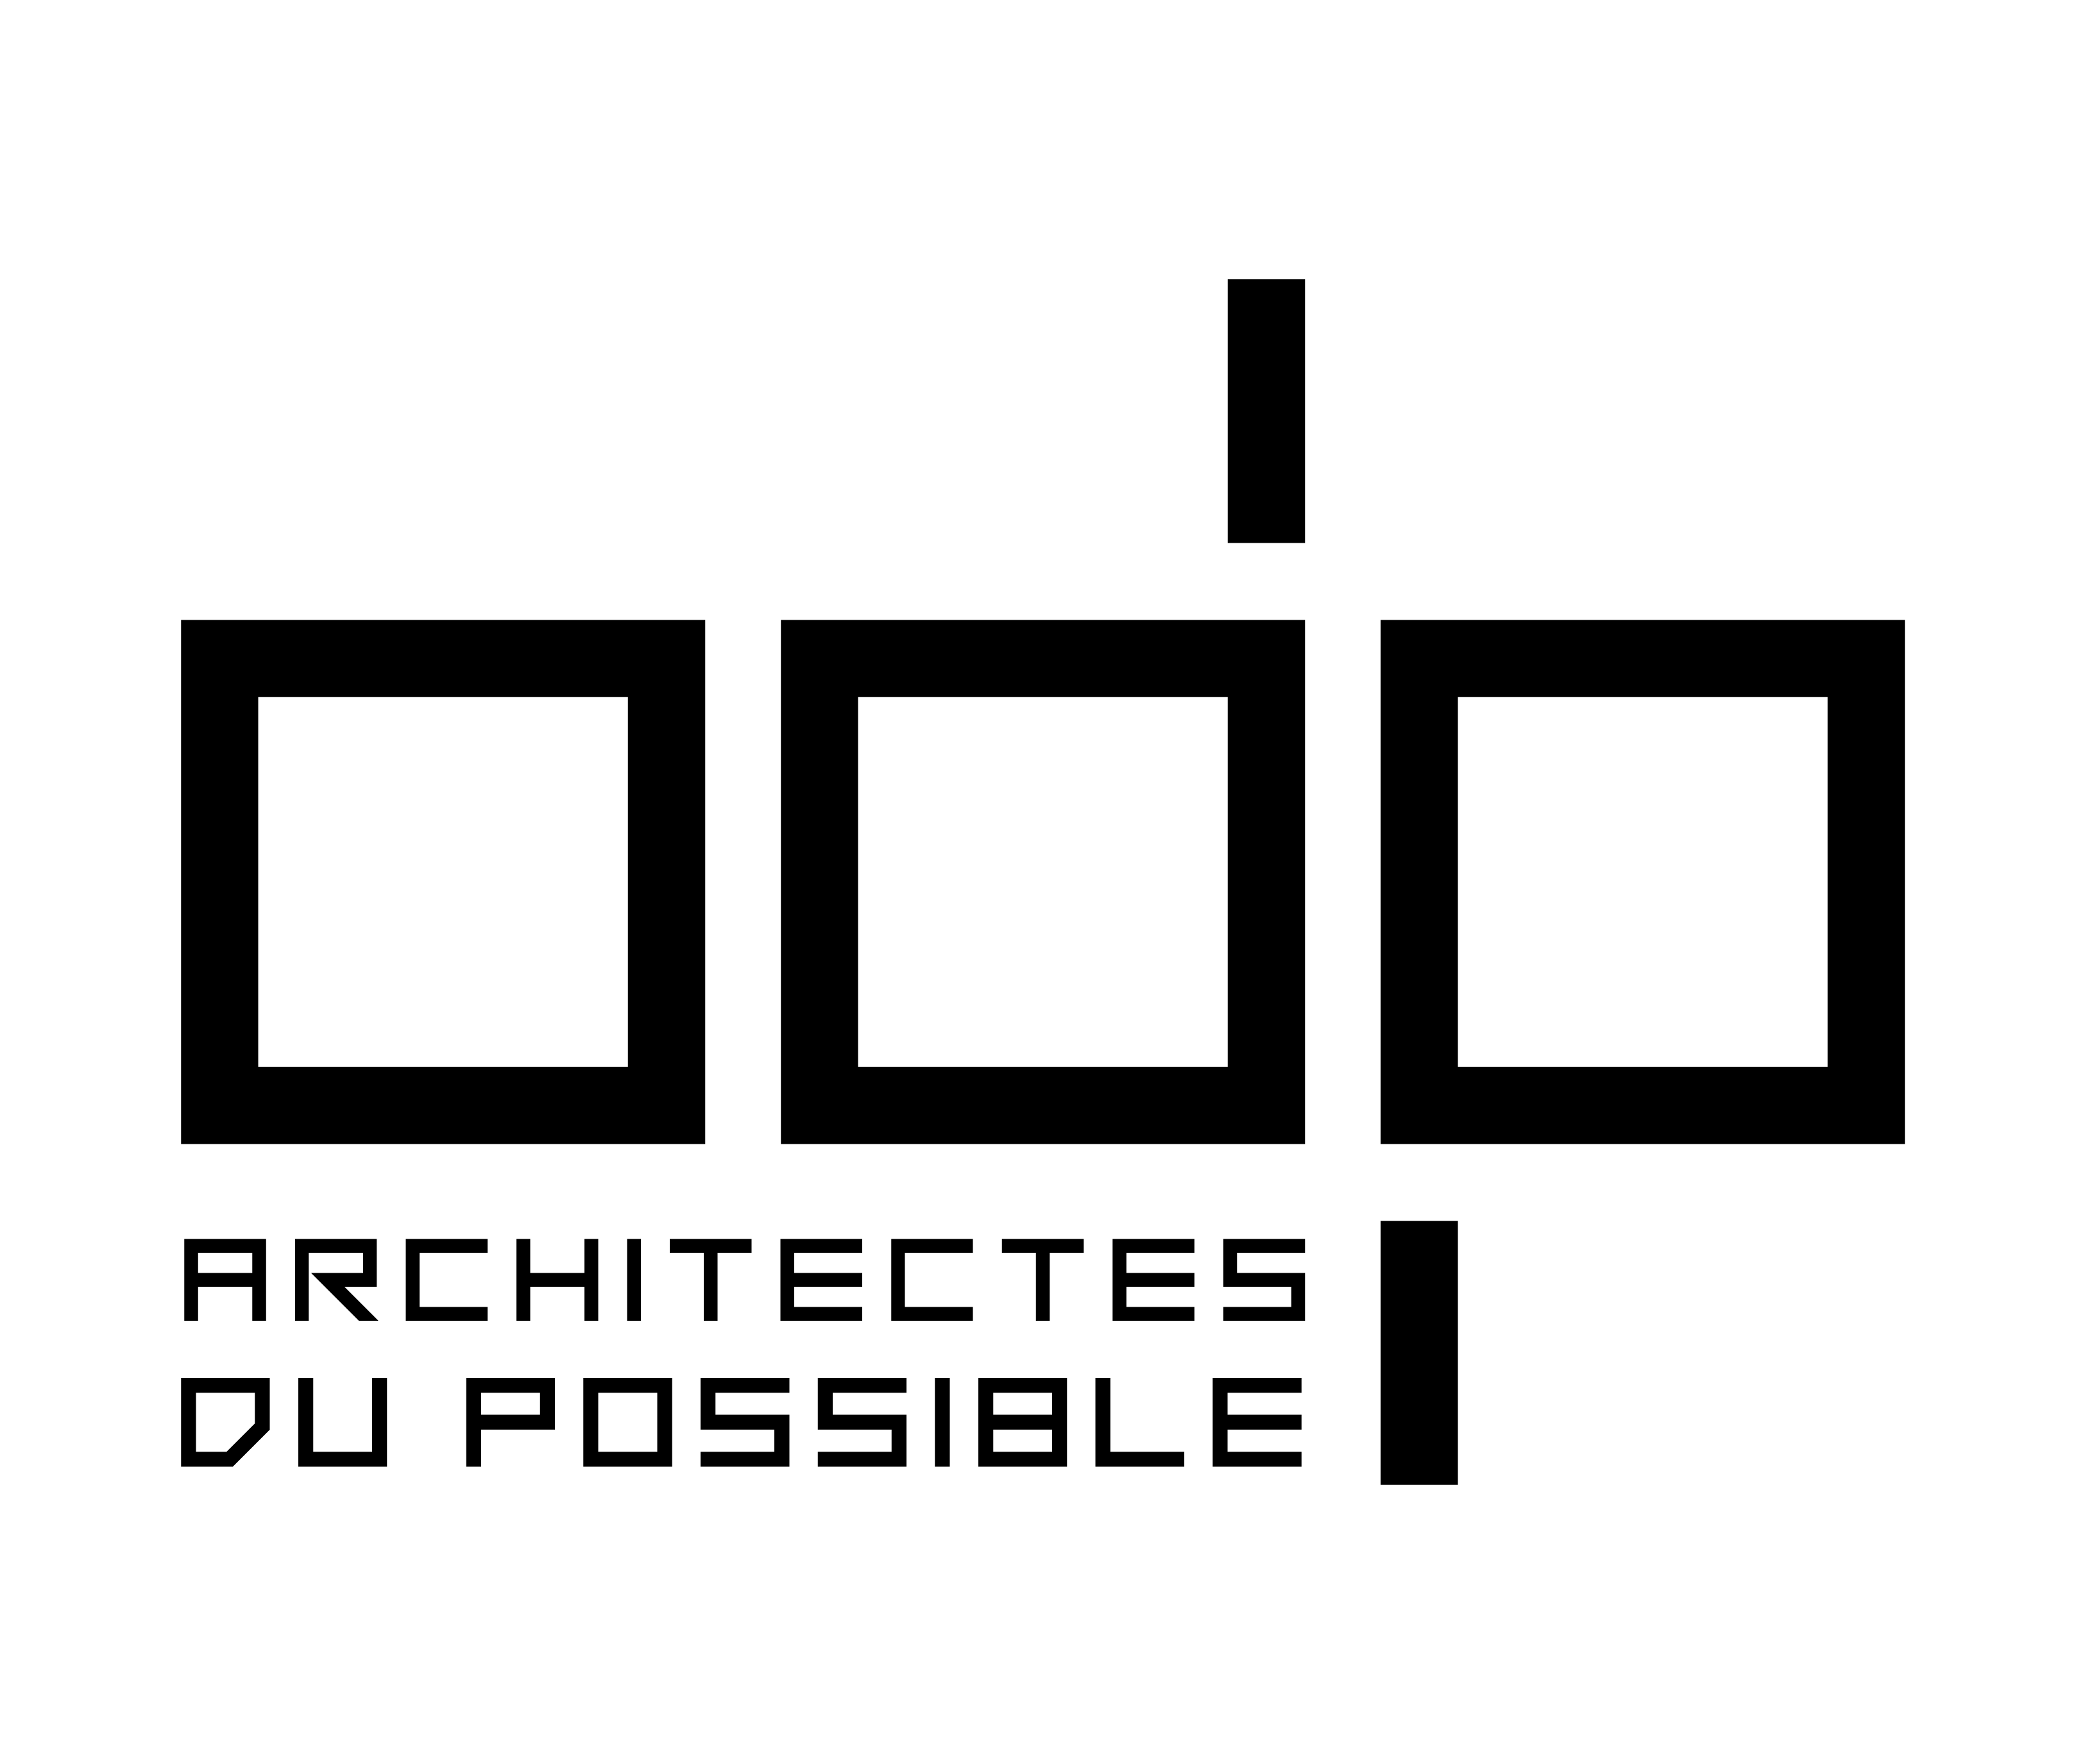 Architectes du possible